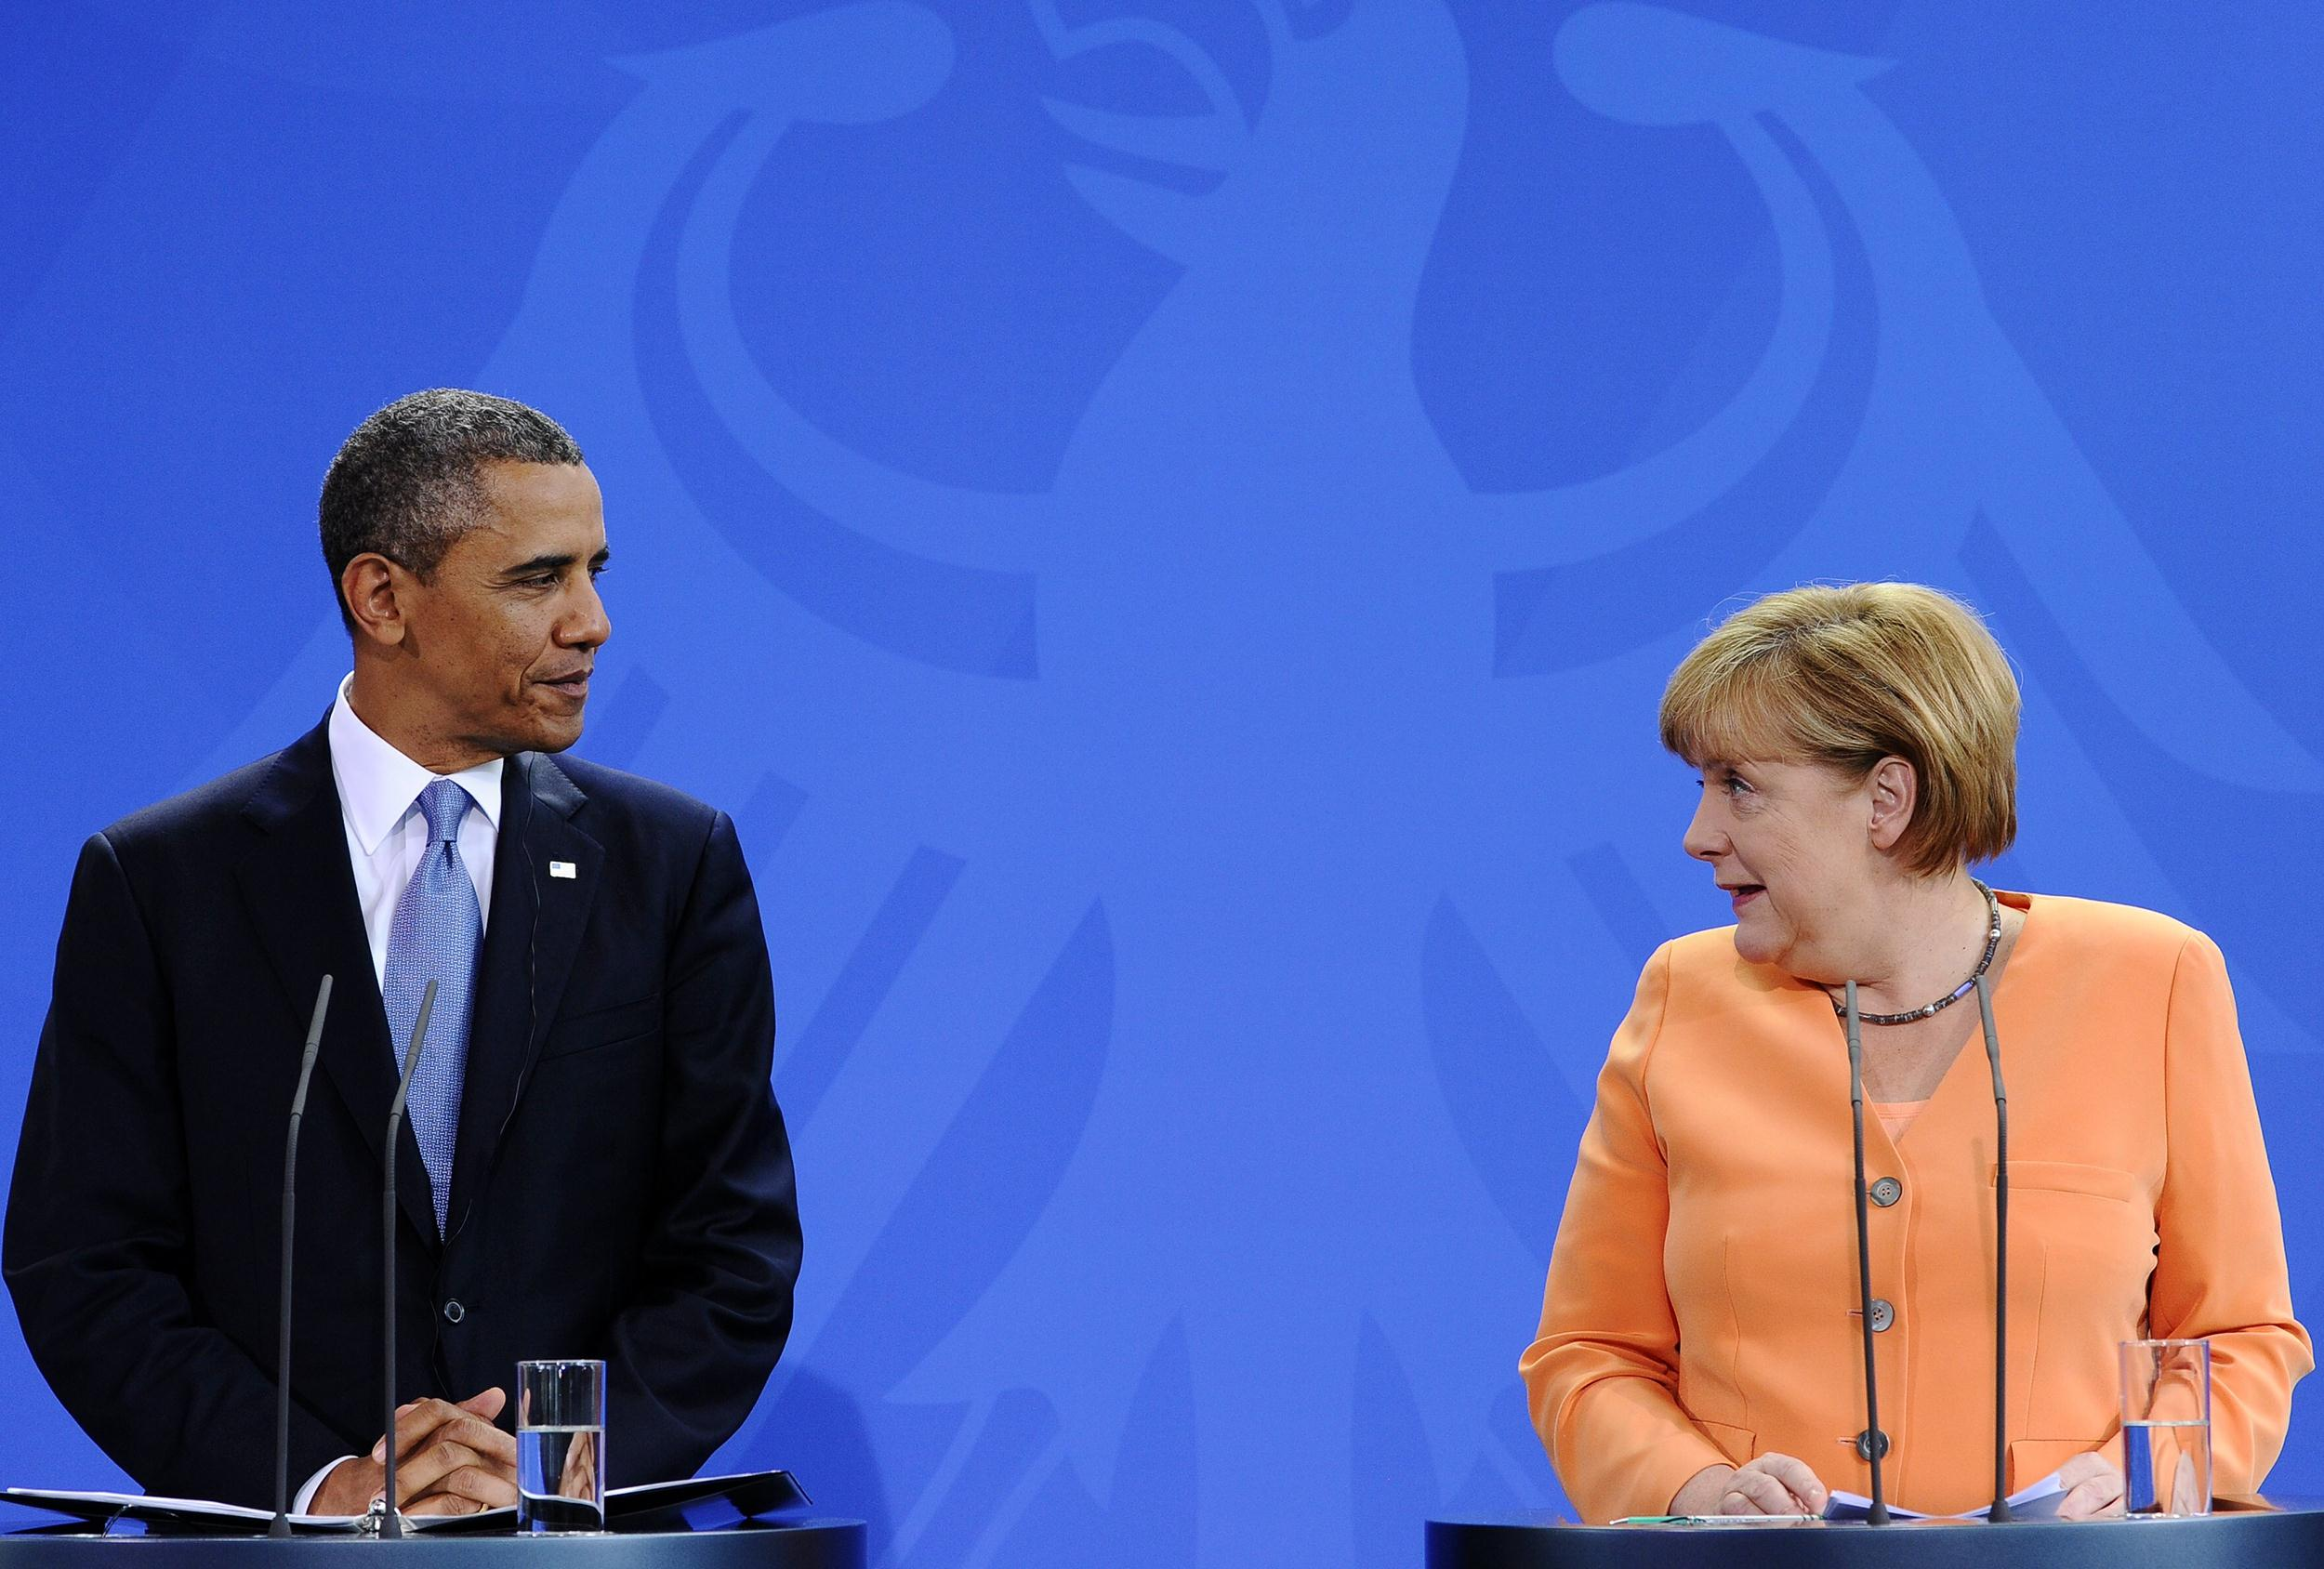 Image: U.S. President Barack Obama and German Chancellor Angela Merkel hold a joint press conference following their bilateral meeting